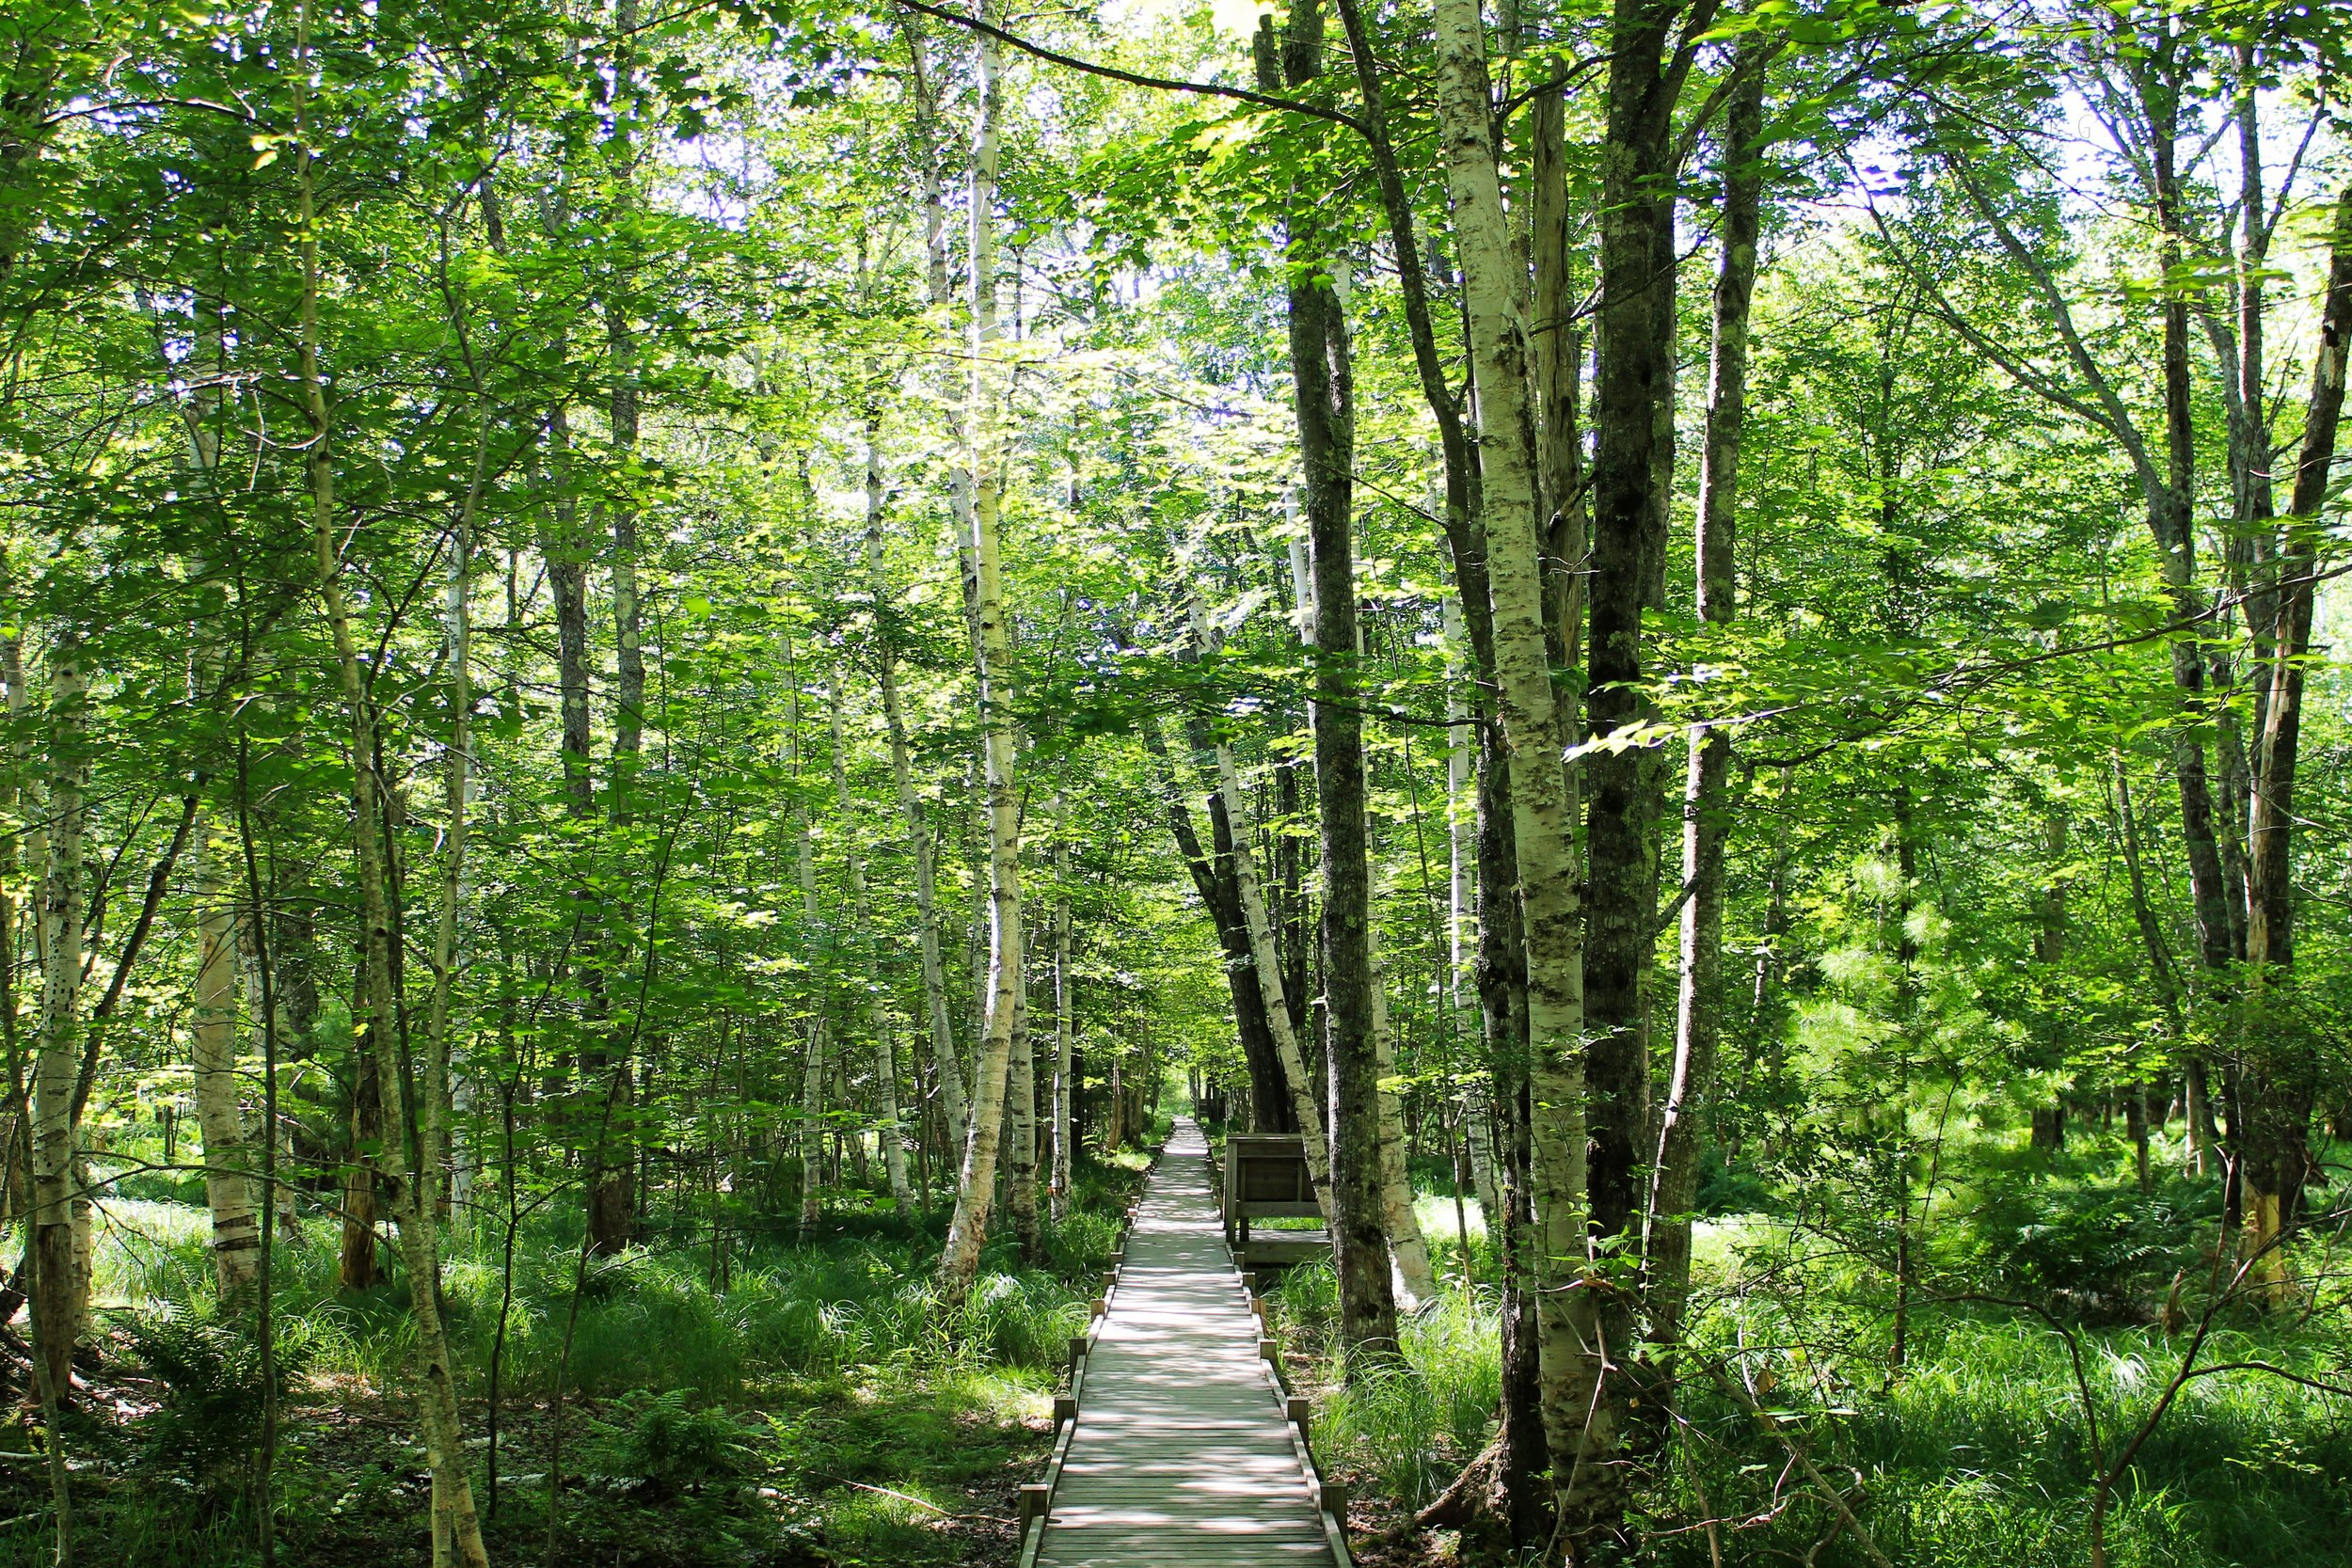 Birch Trees and the Boardwalk Path